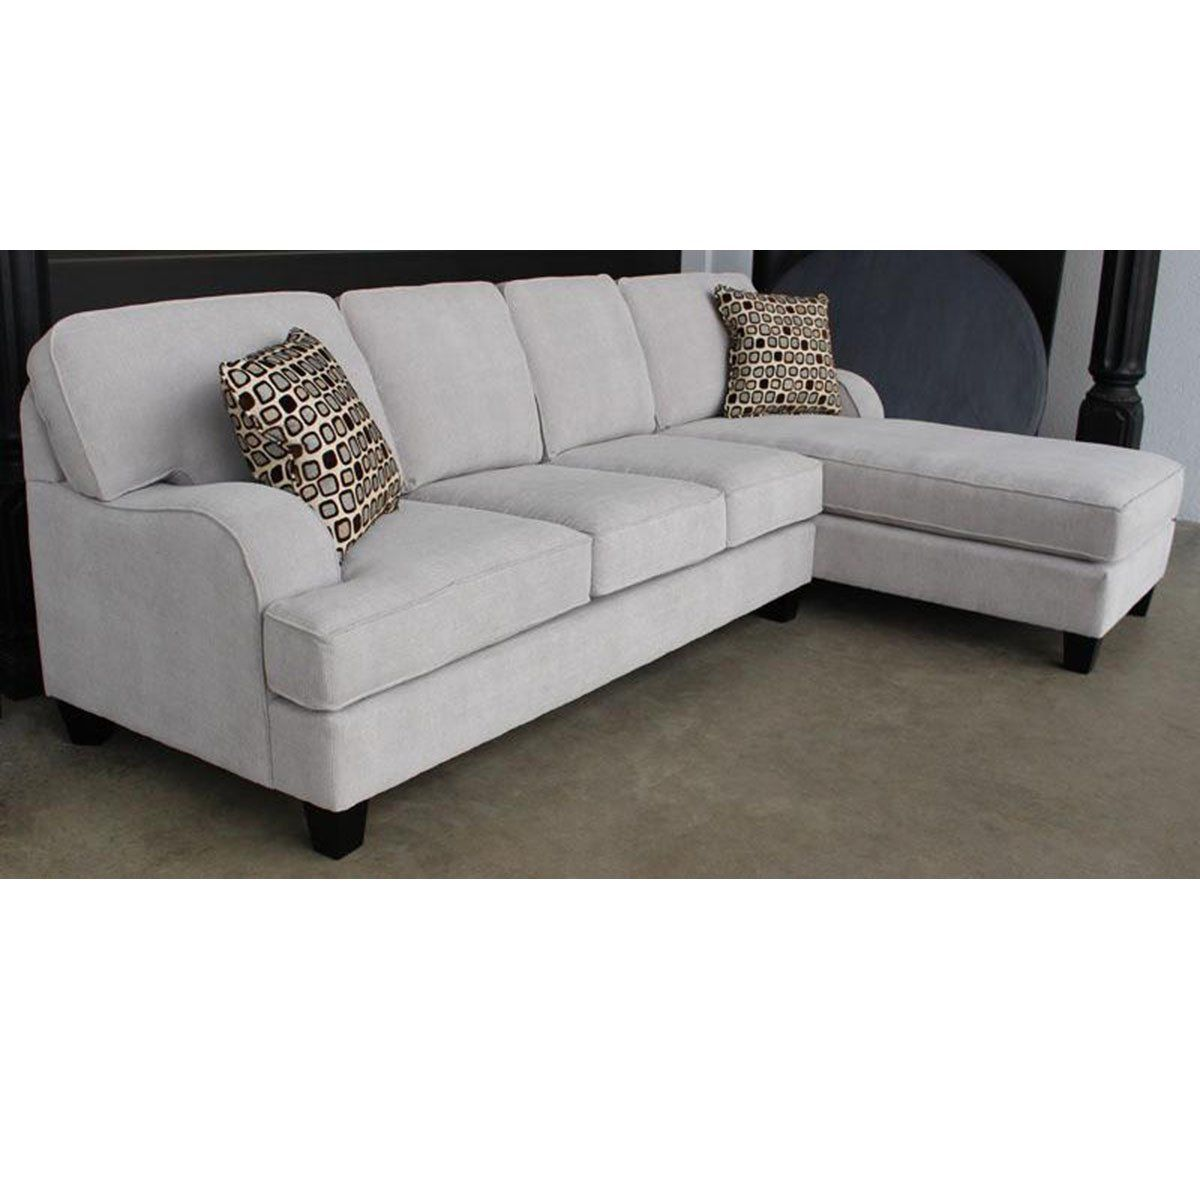 Philly 2 Piece Sofa Chaise Sectional